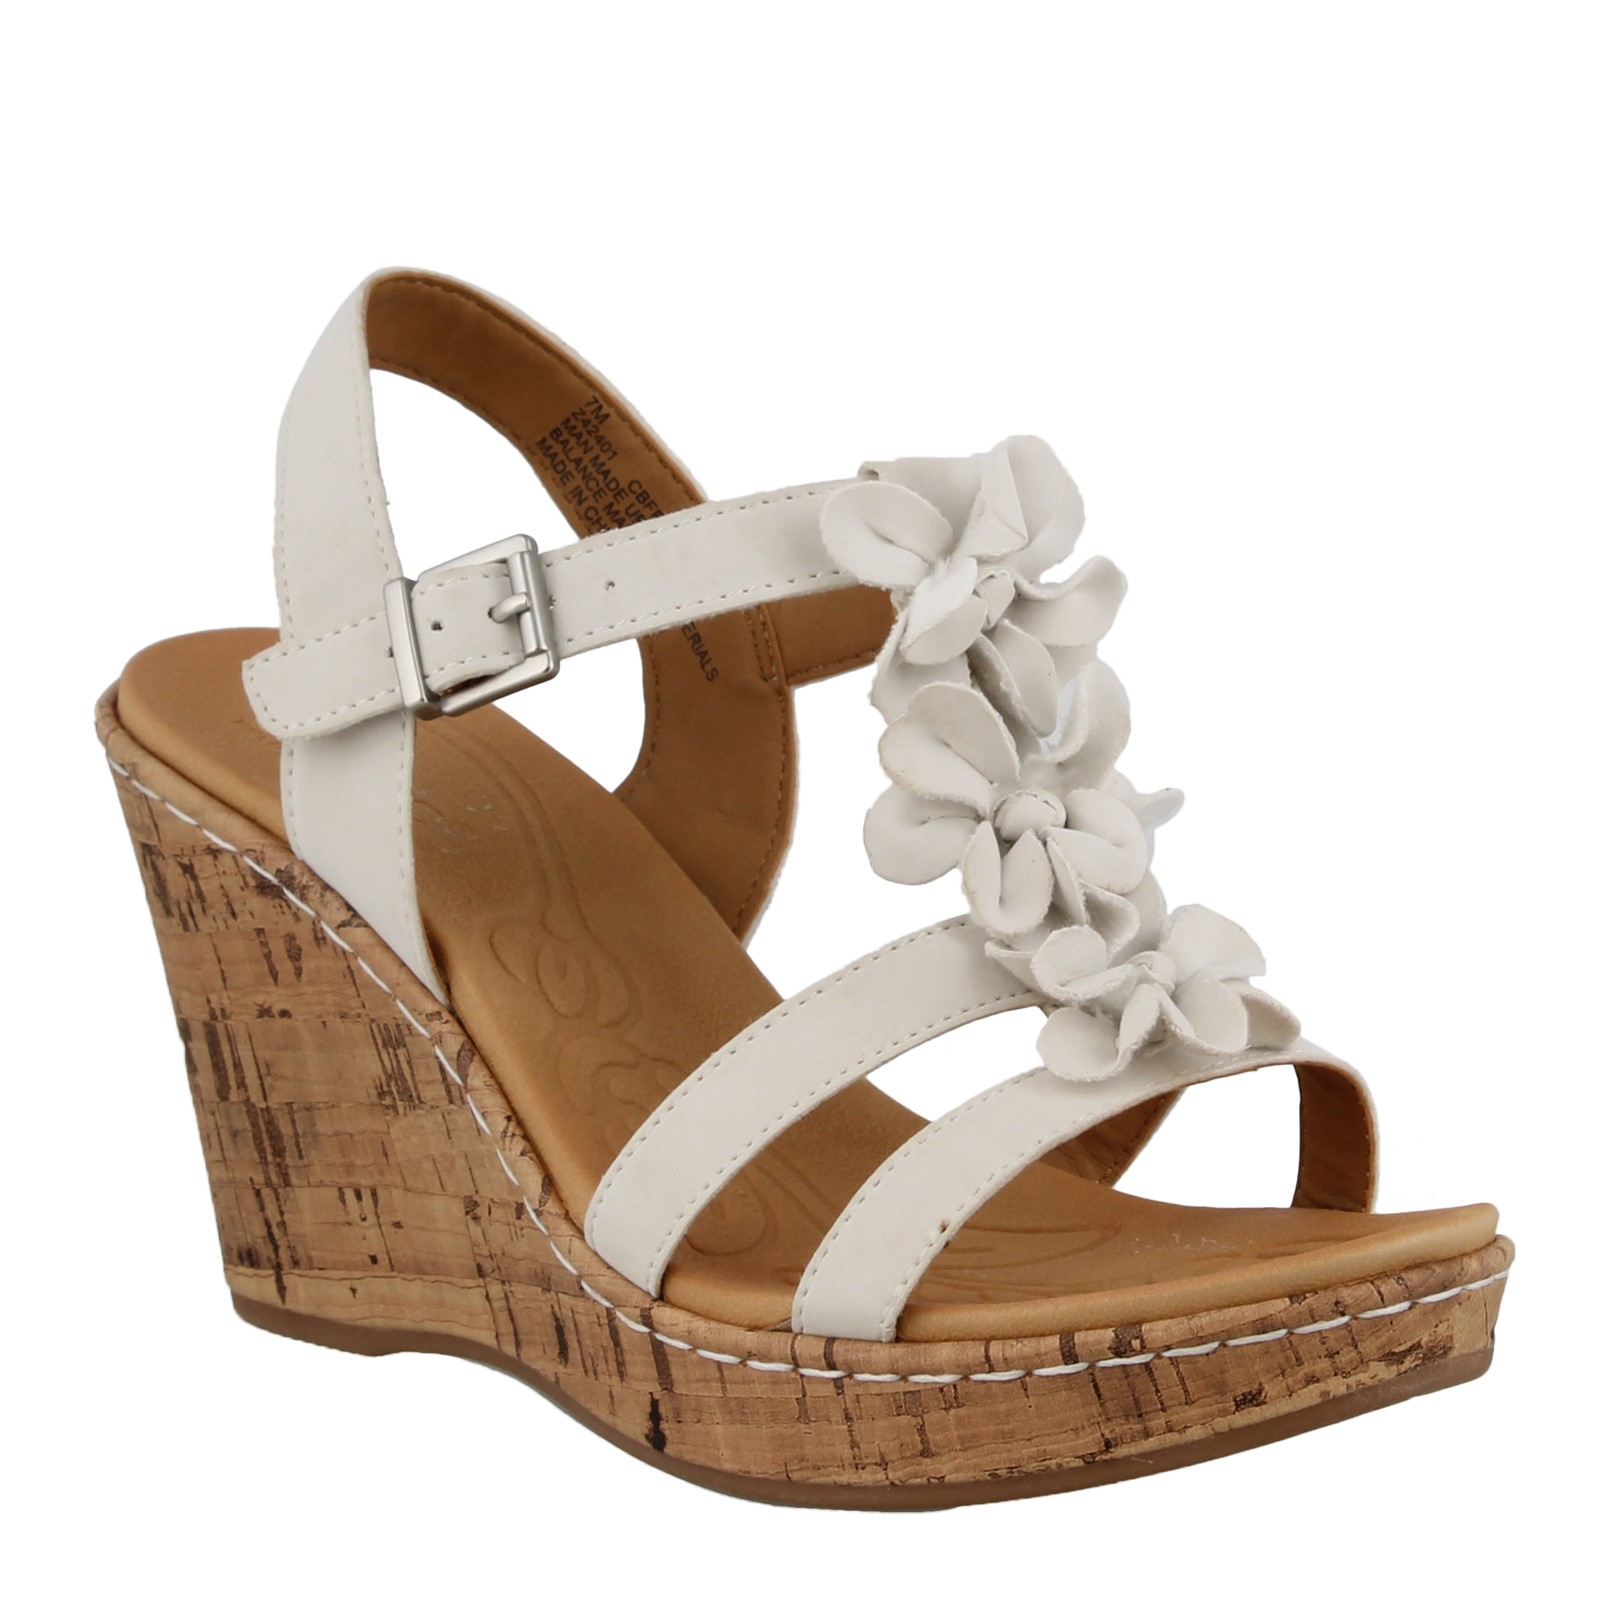 Women's B.O.C, Patsy Wedge Sandals